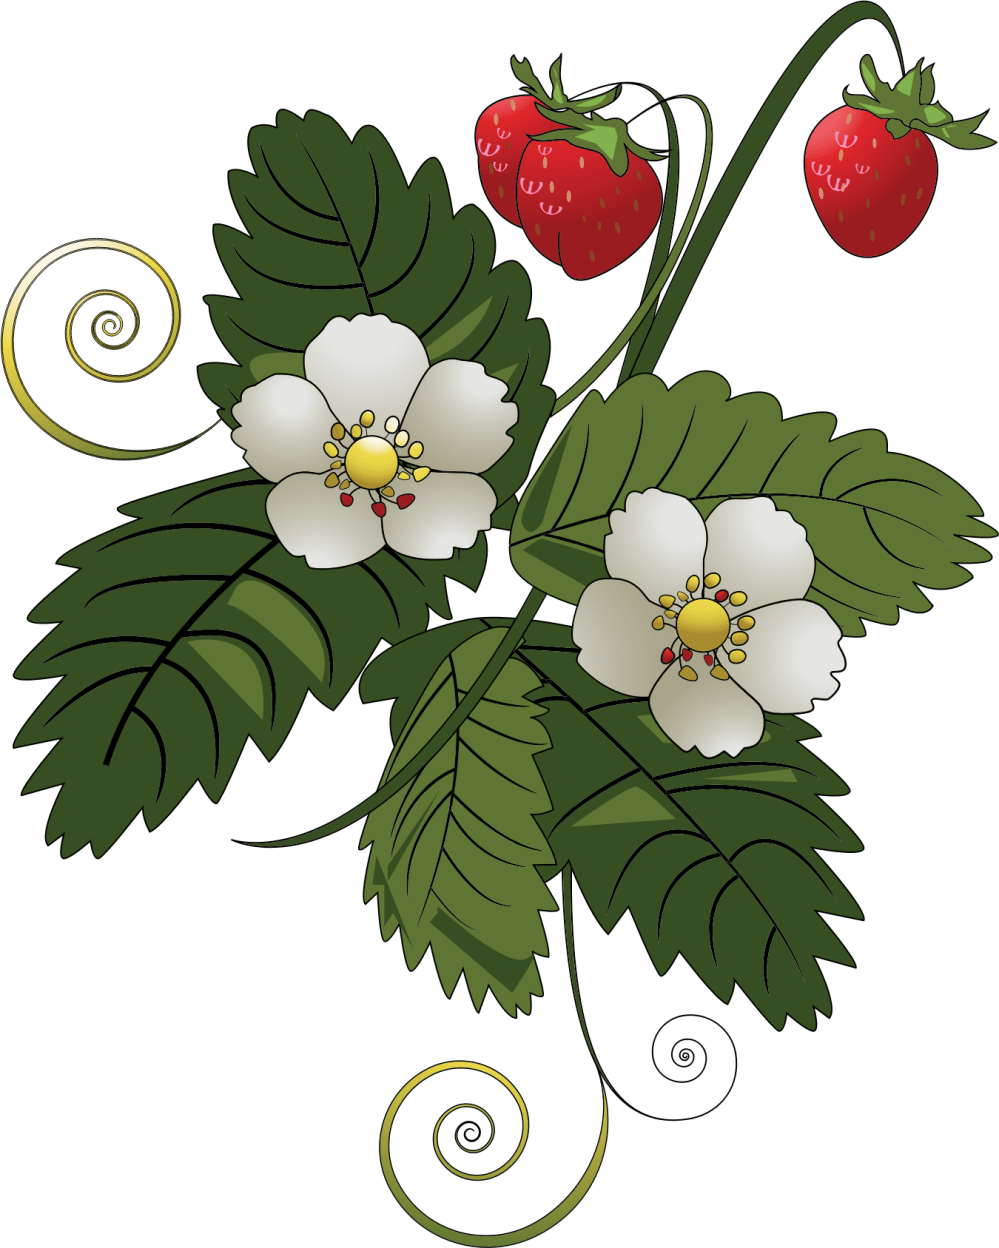 medium resolution of strawberry big image png plant clipart fruit plant banner freeuse